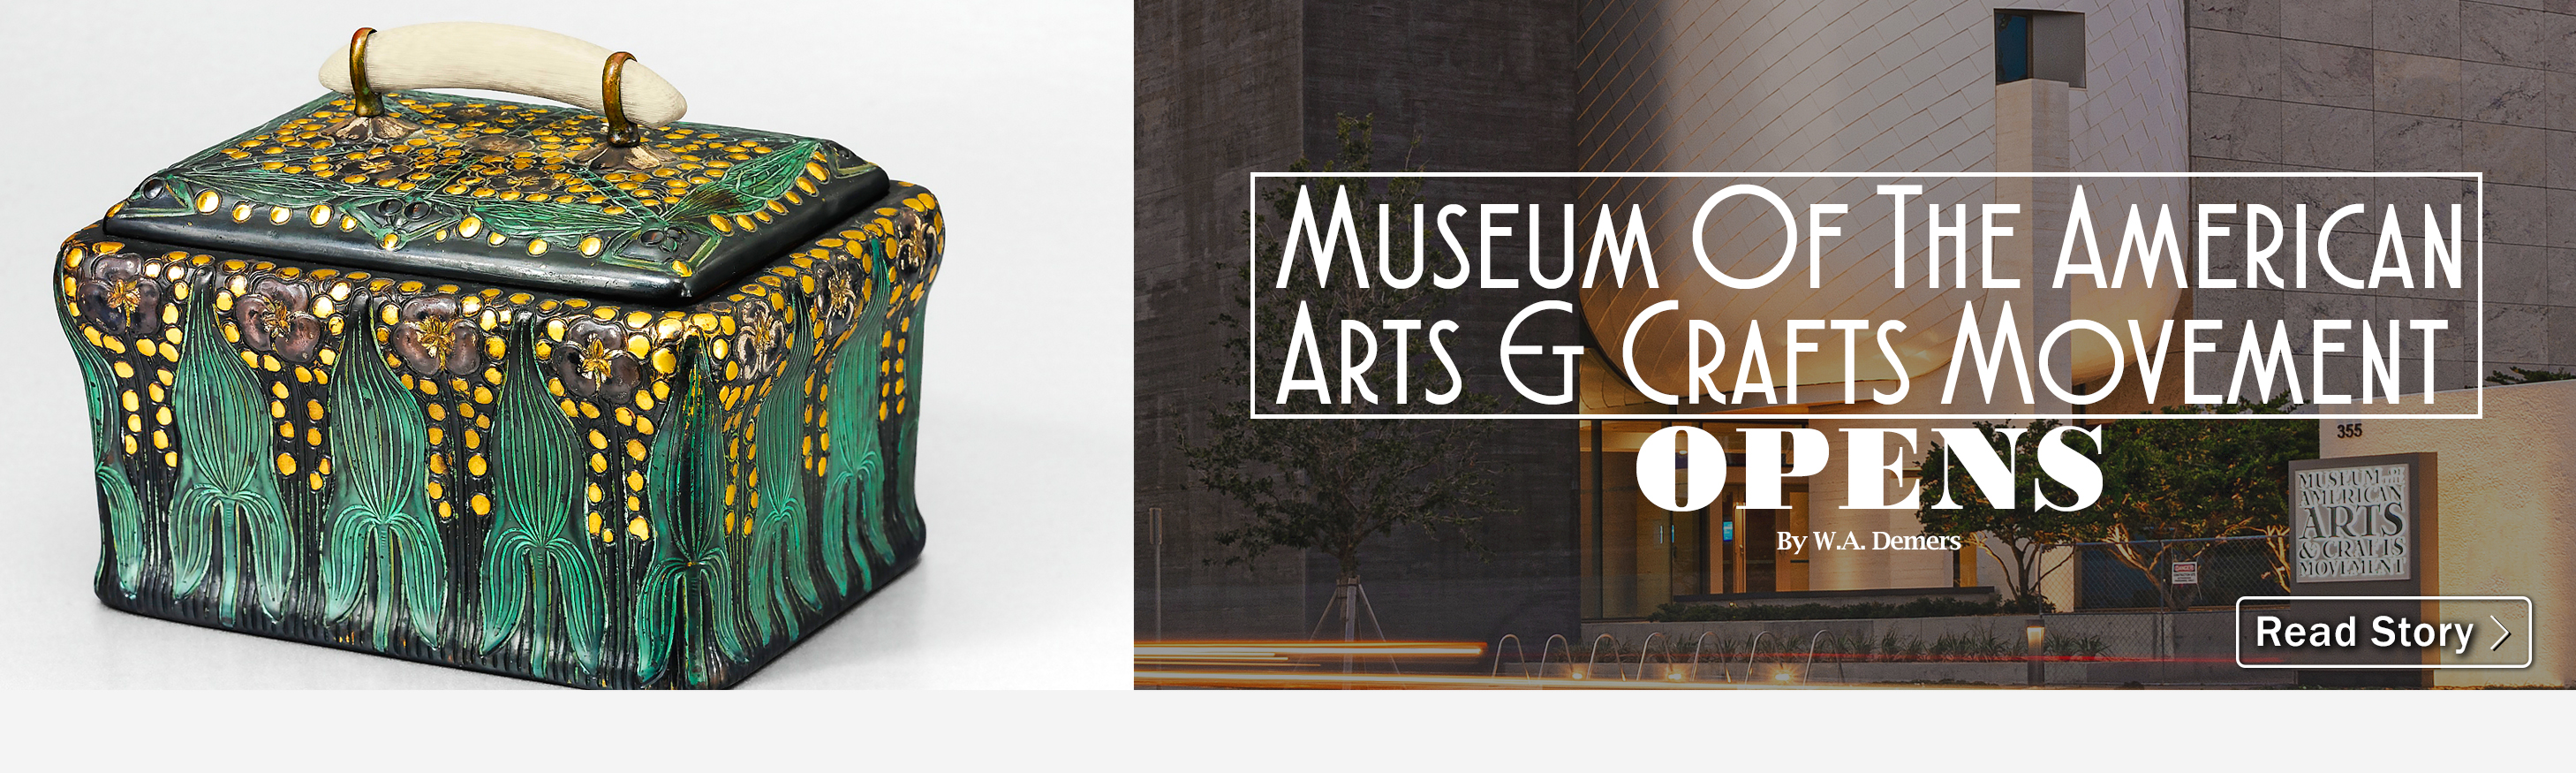 Museum Of The American Arts & Crafts Movement Opens